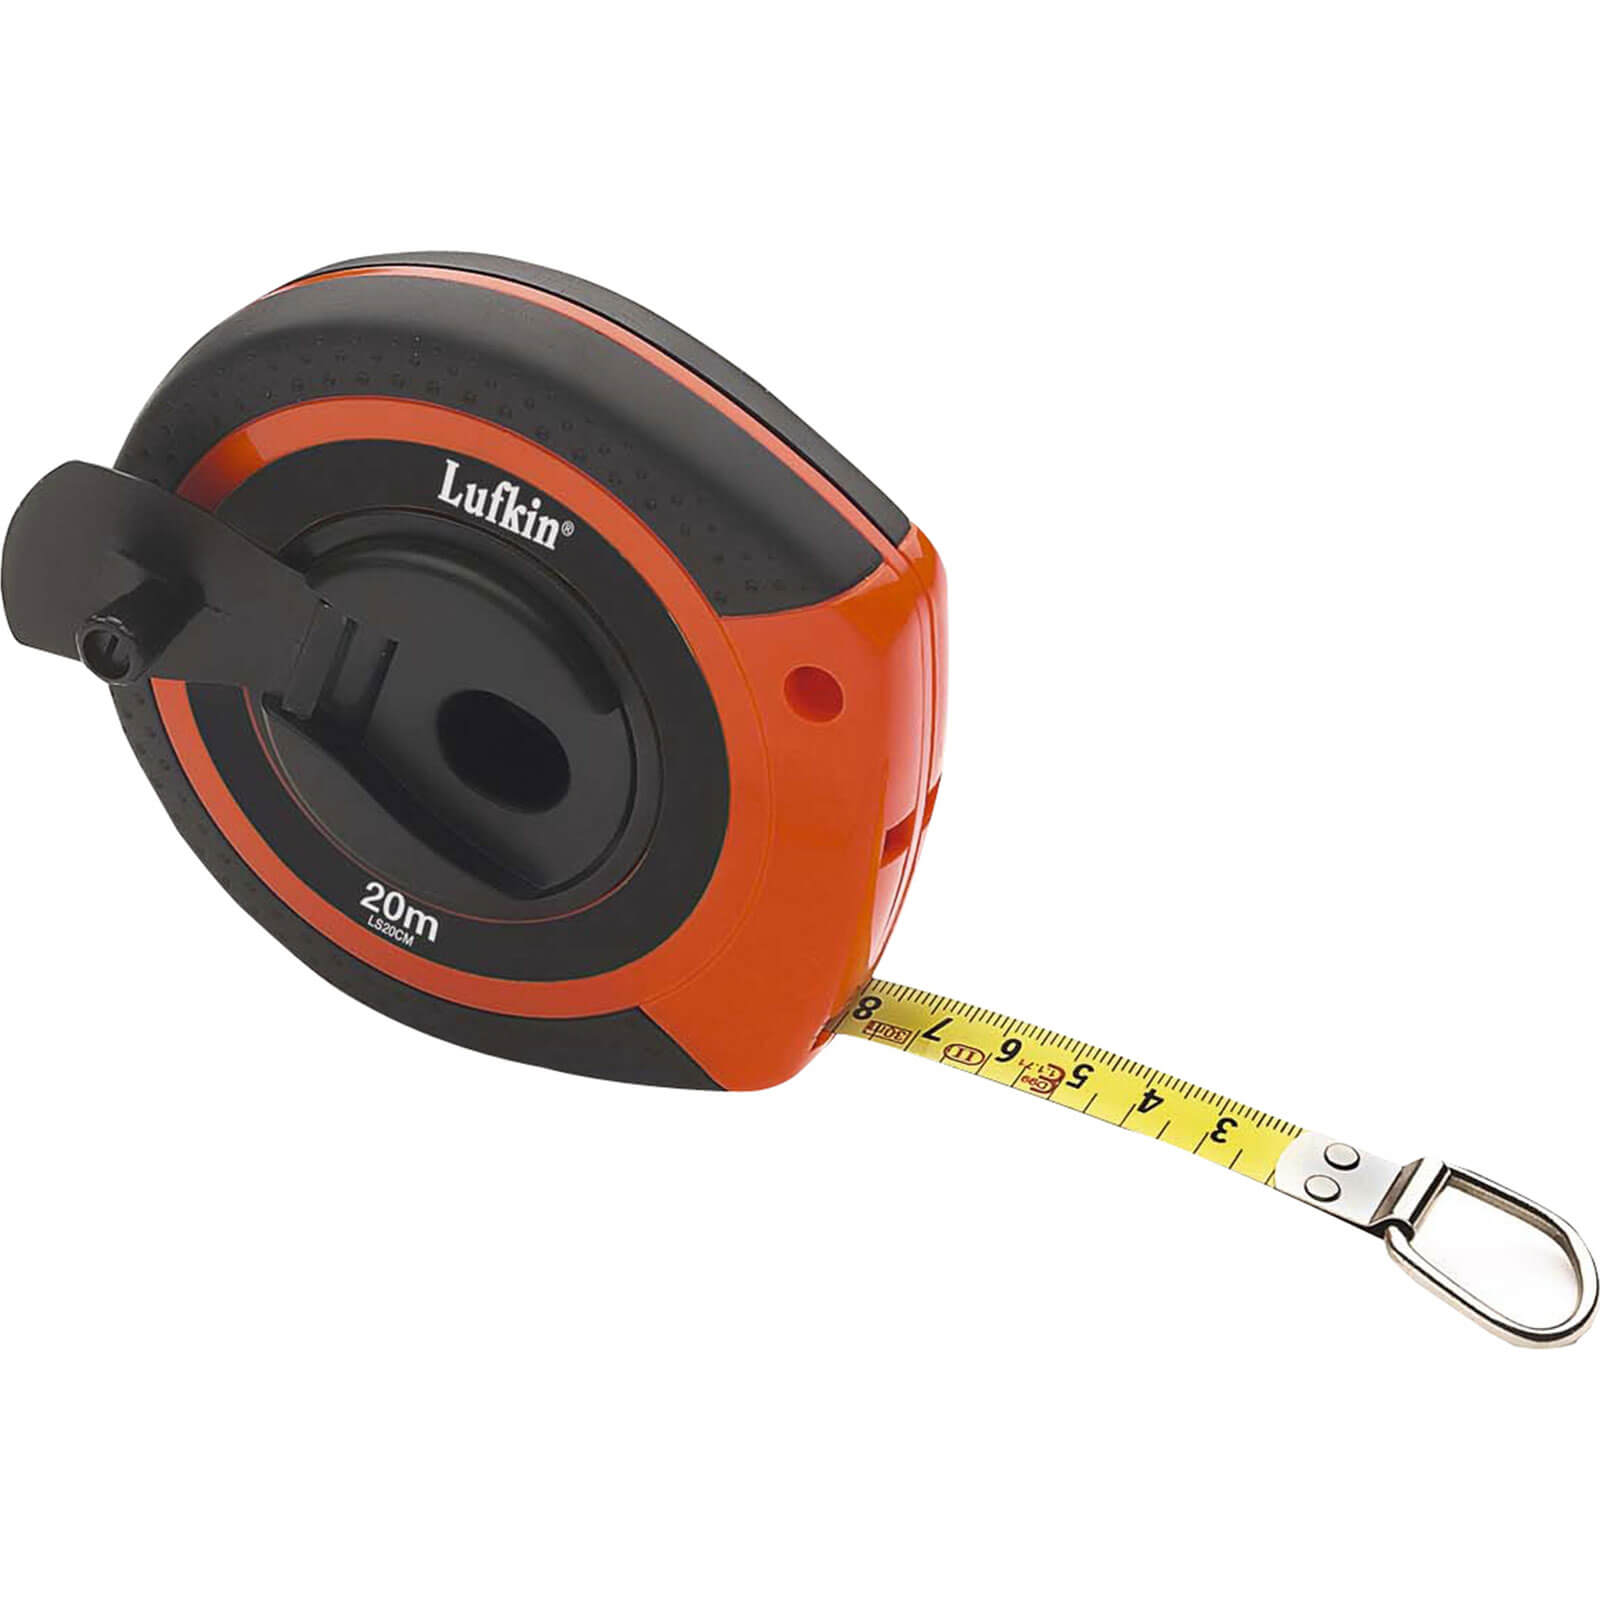 Image of Lufkin Special Long Tape Measure Imperial & Metric 33ft / 10m 10mm